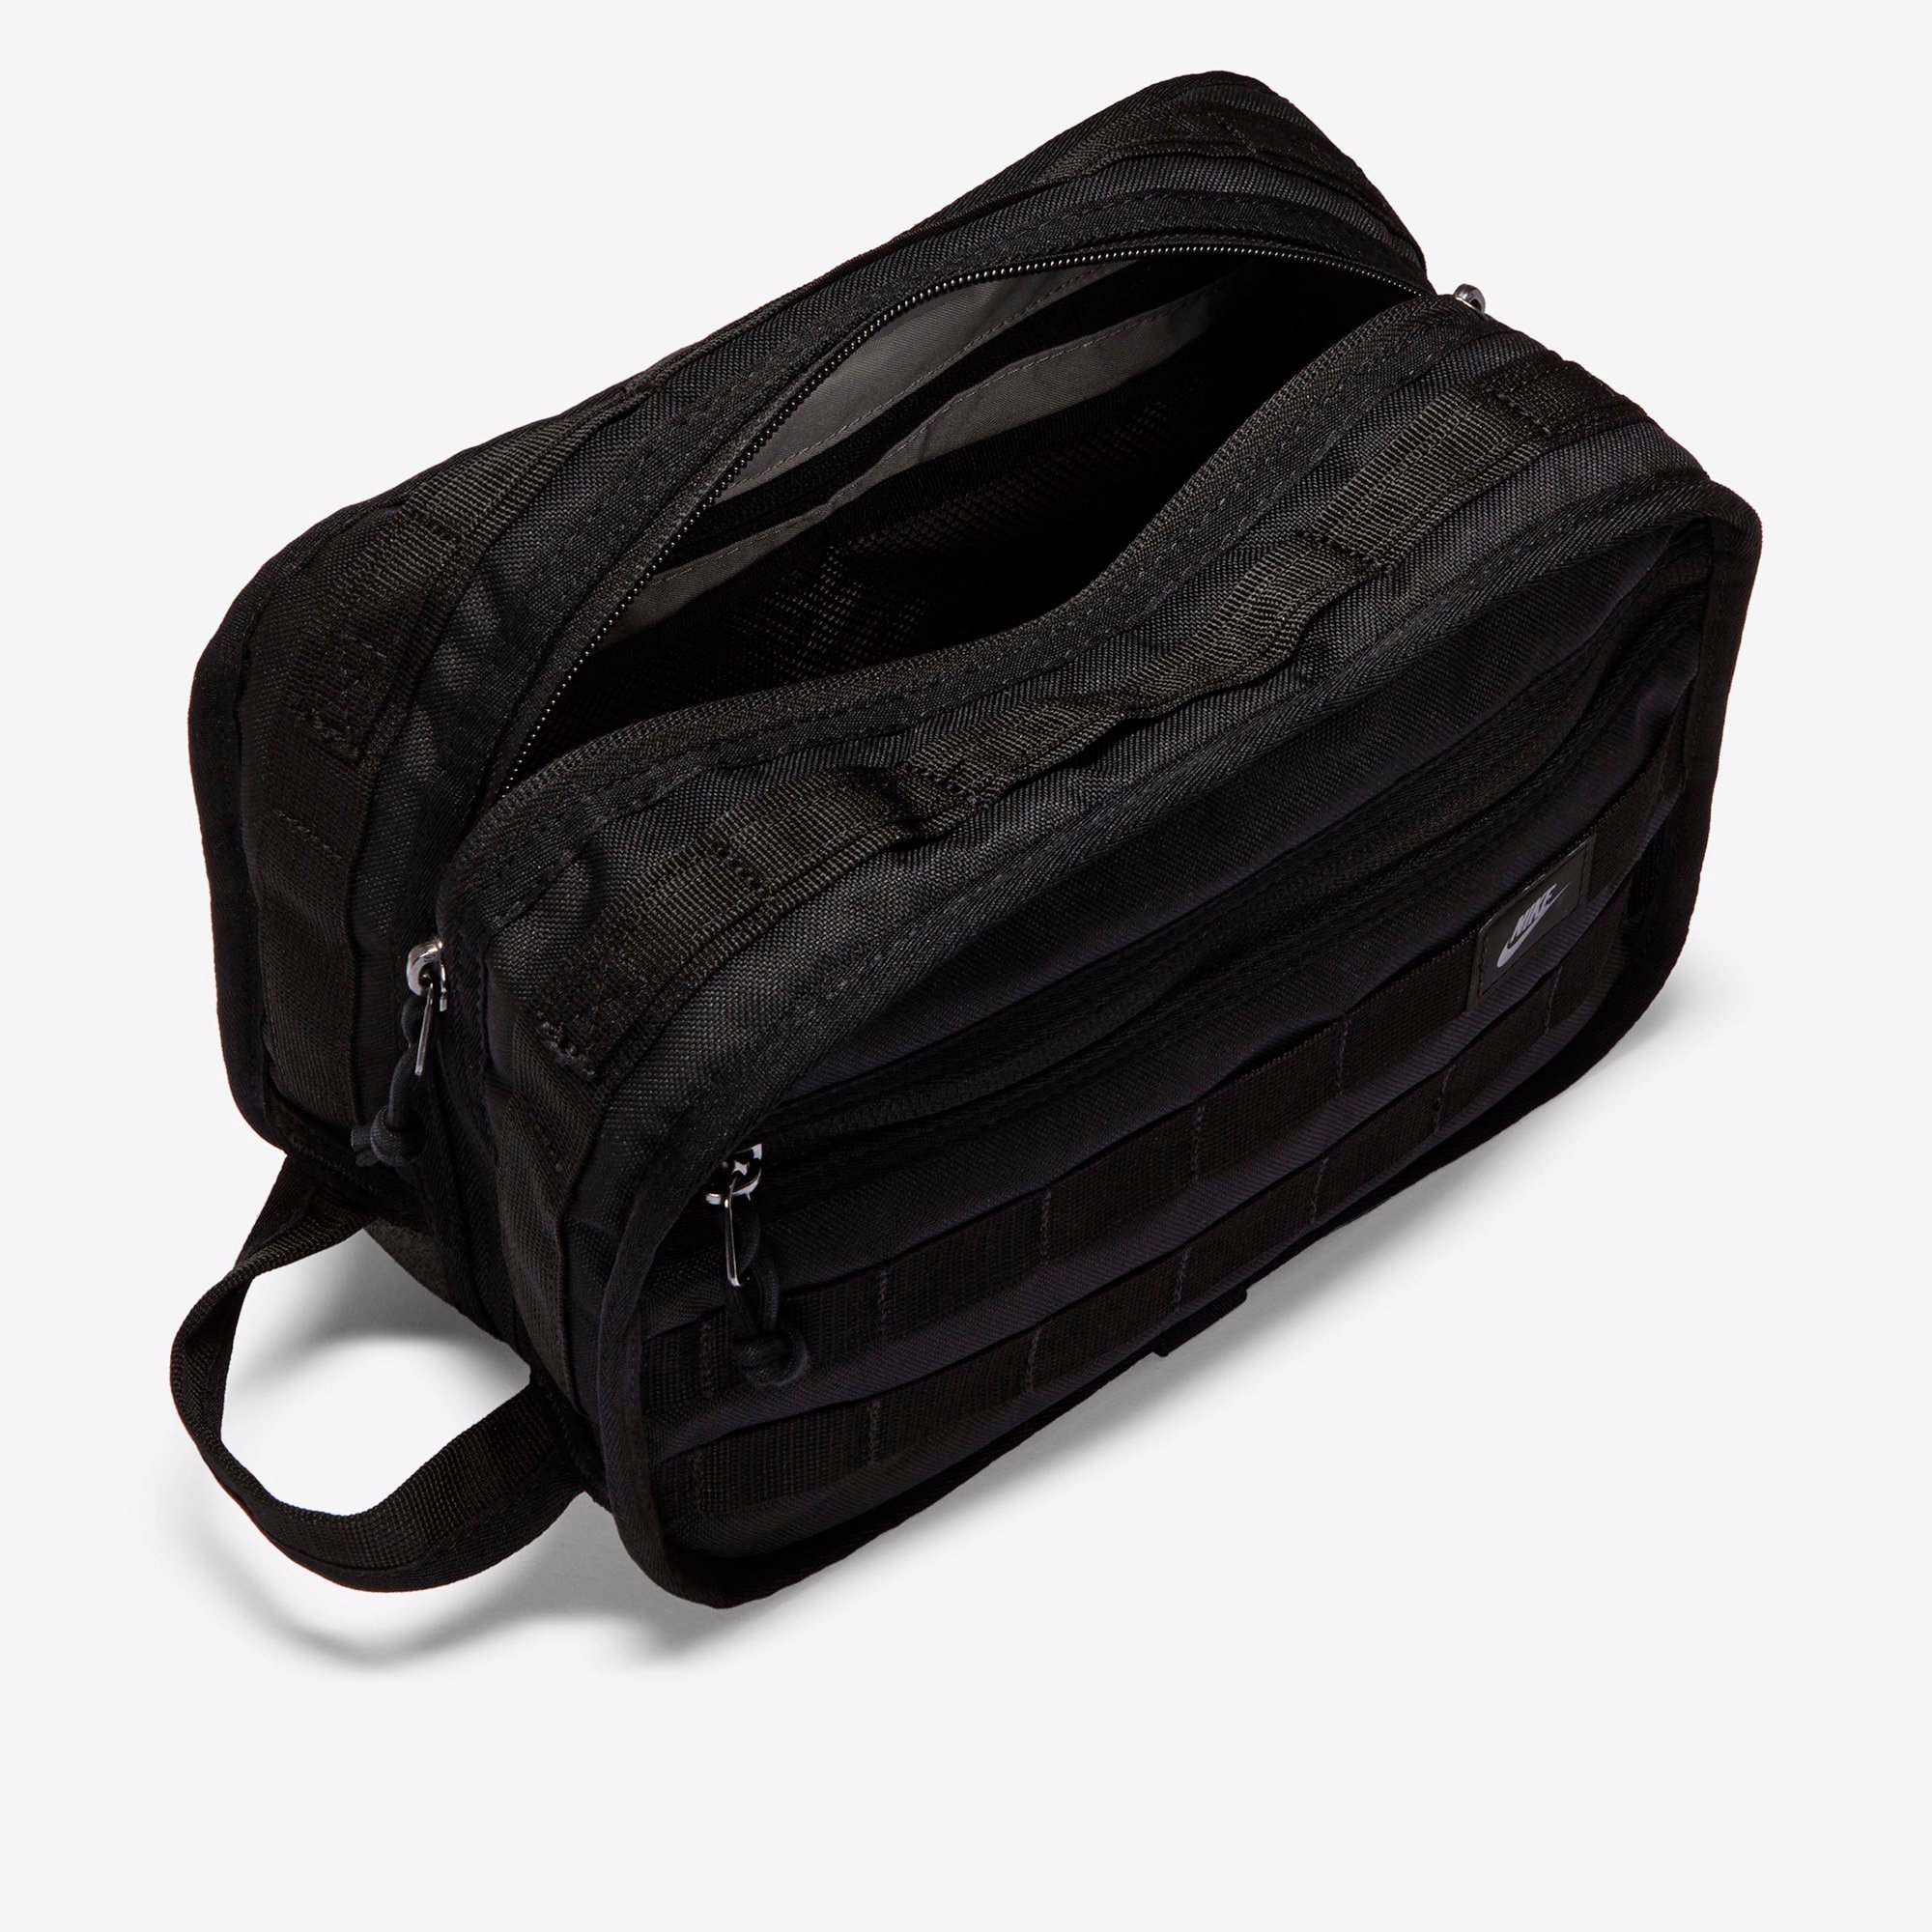 Nike Sportswear RPM Utility Bag - Black